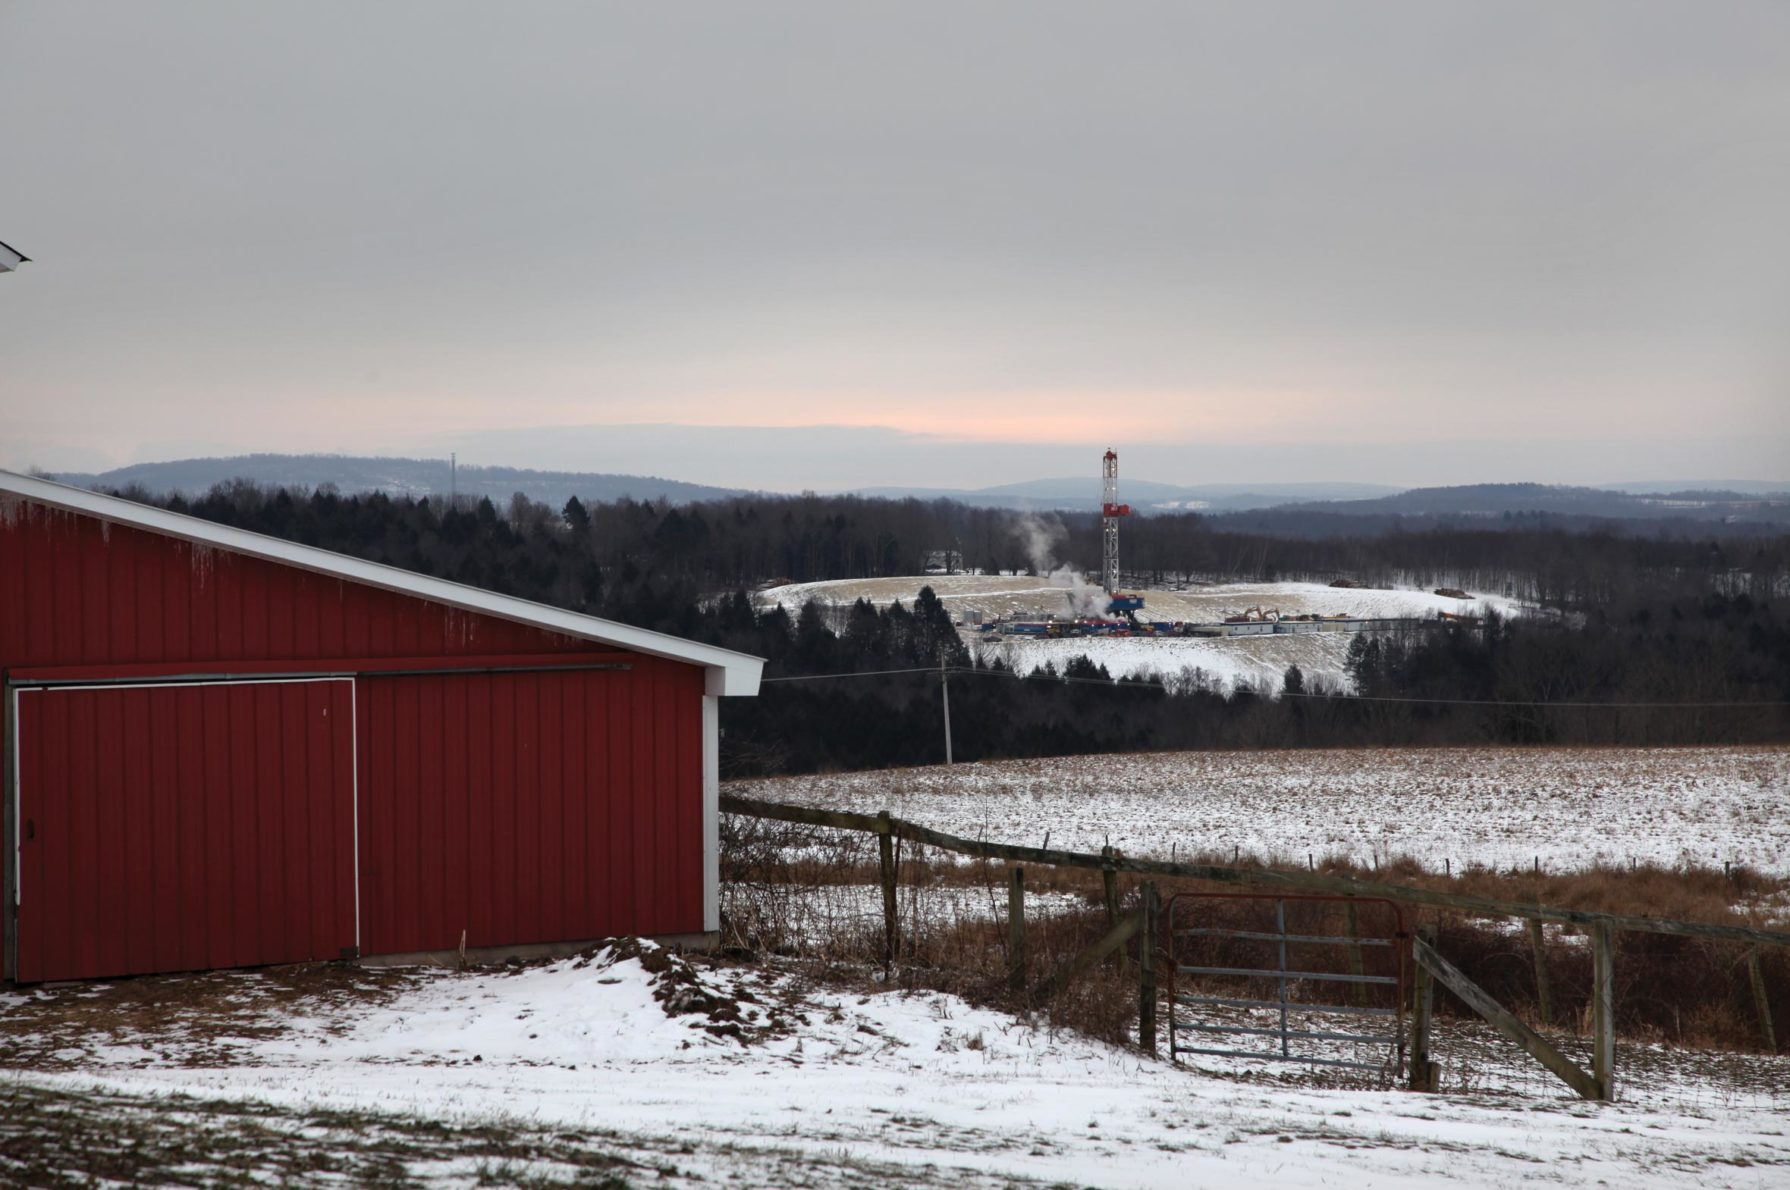 Red barn on a snowy farm, with a fracking well in the distance.